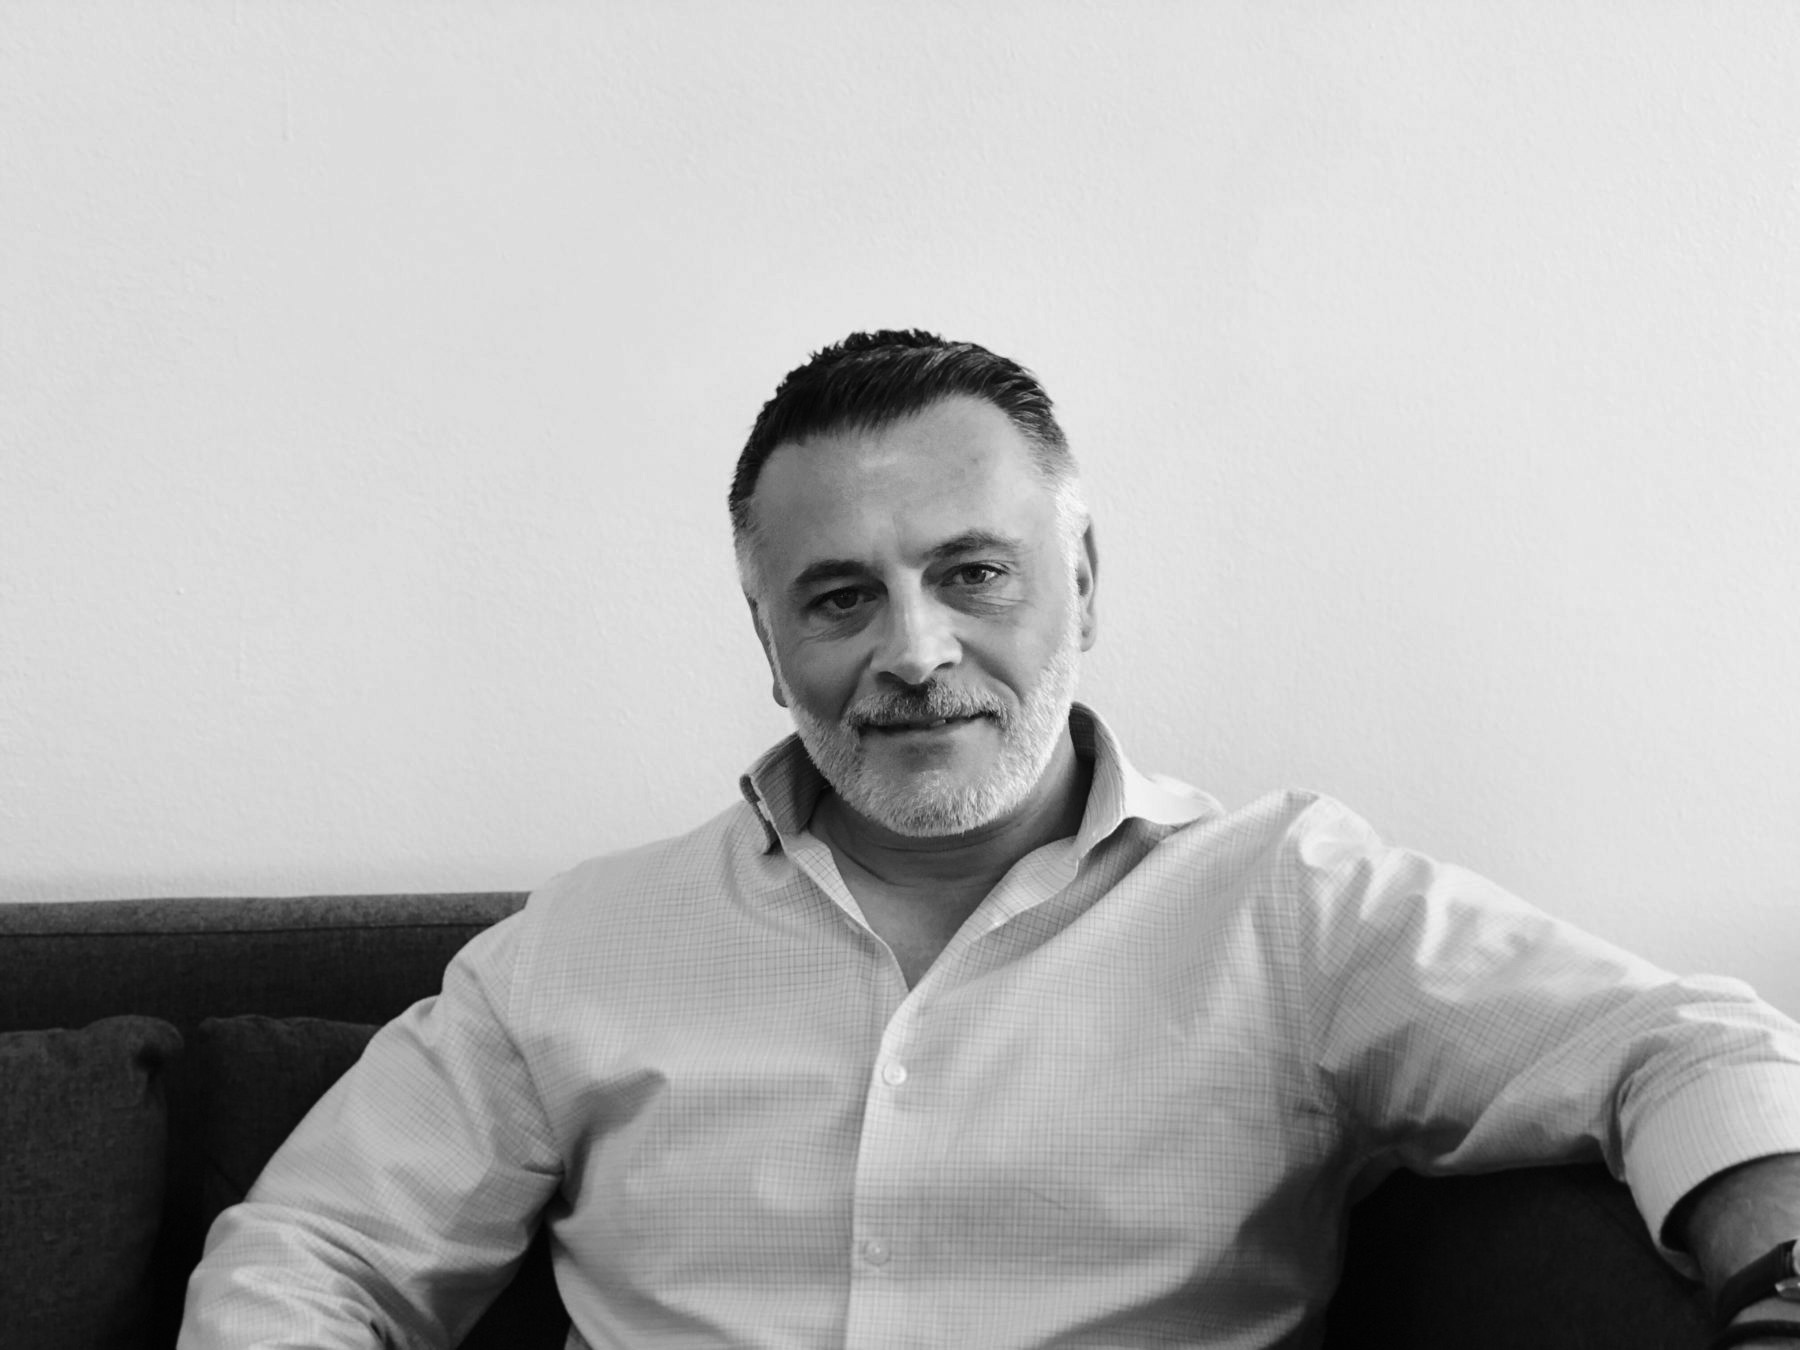 James Amendola joins Neolith as the vice president of North America.